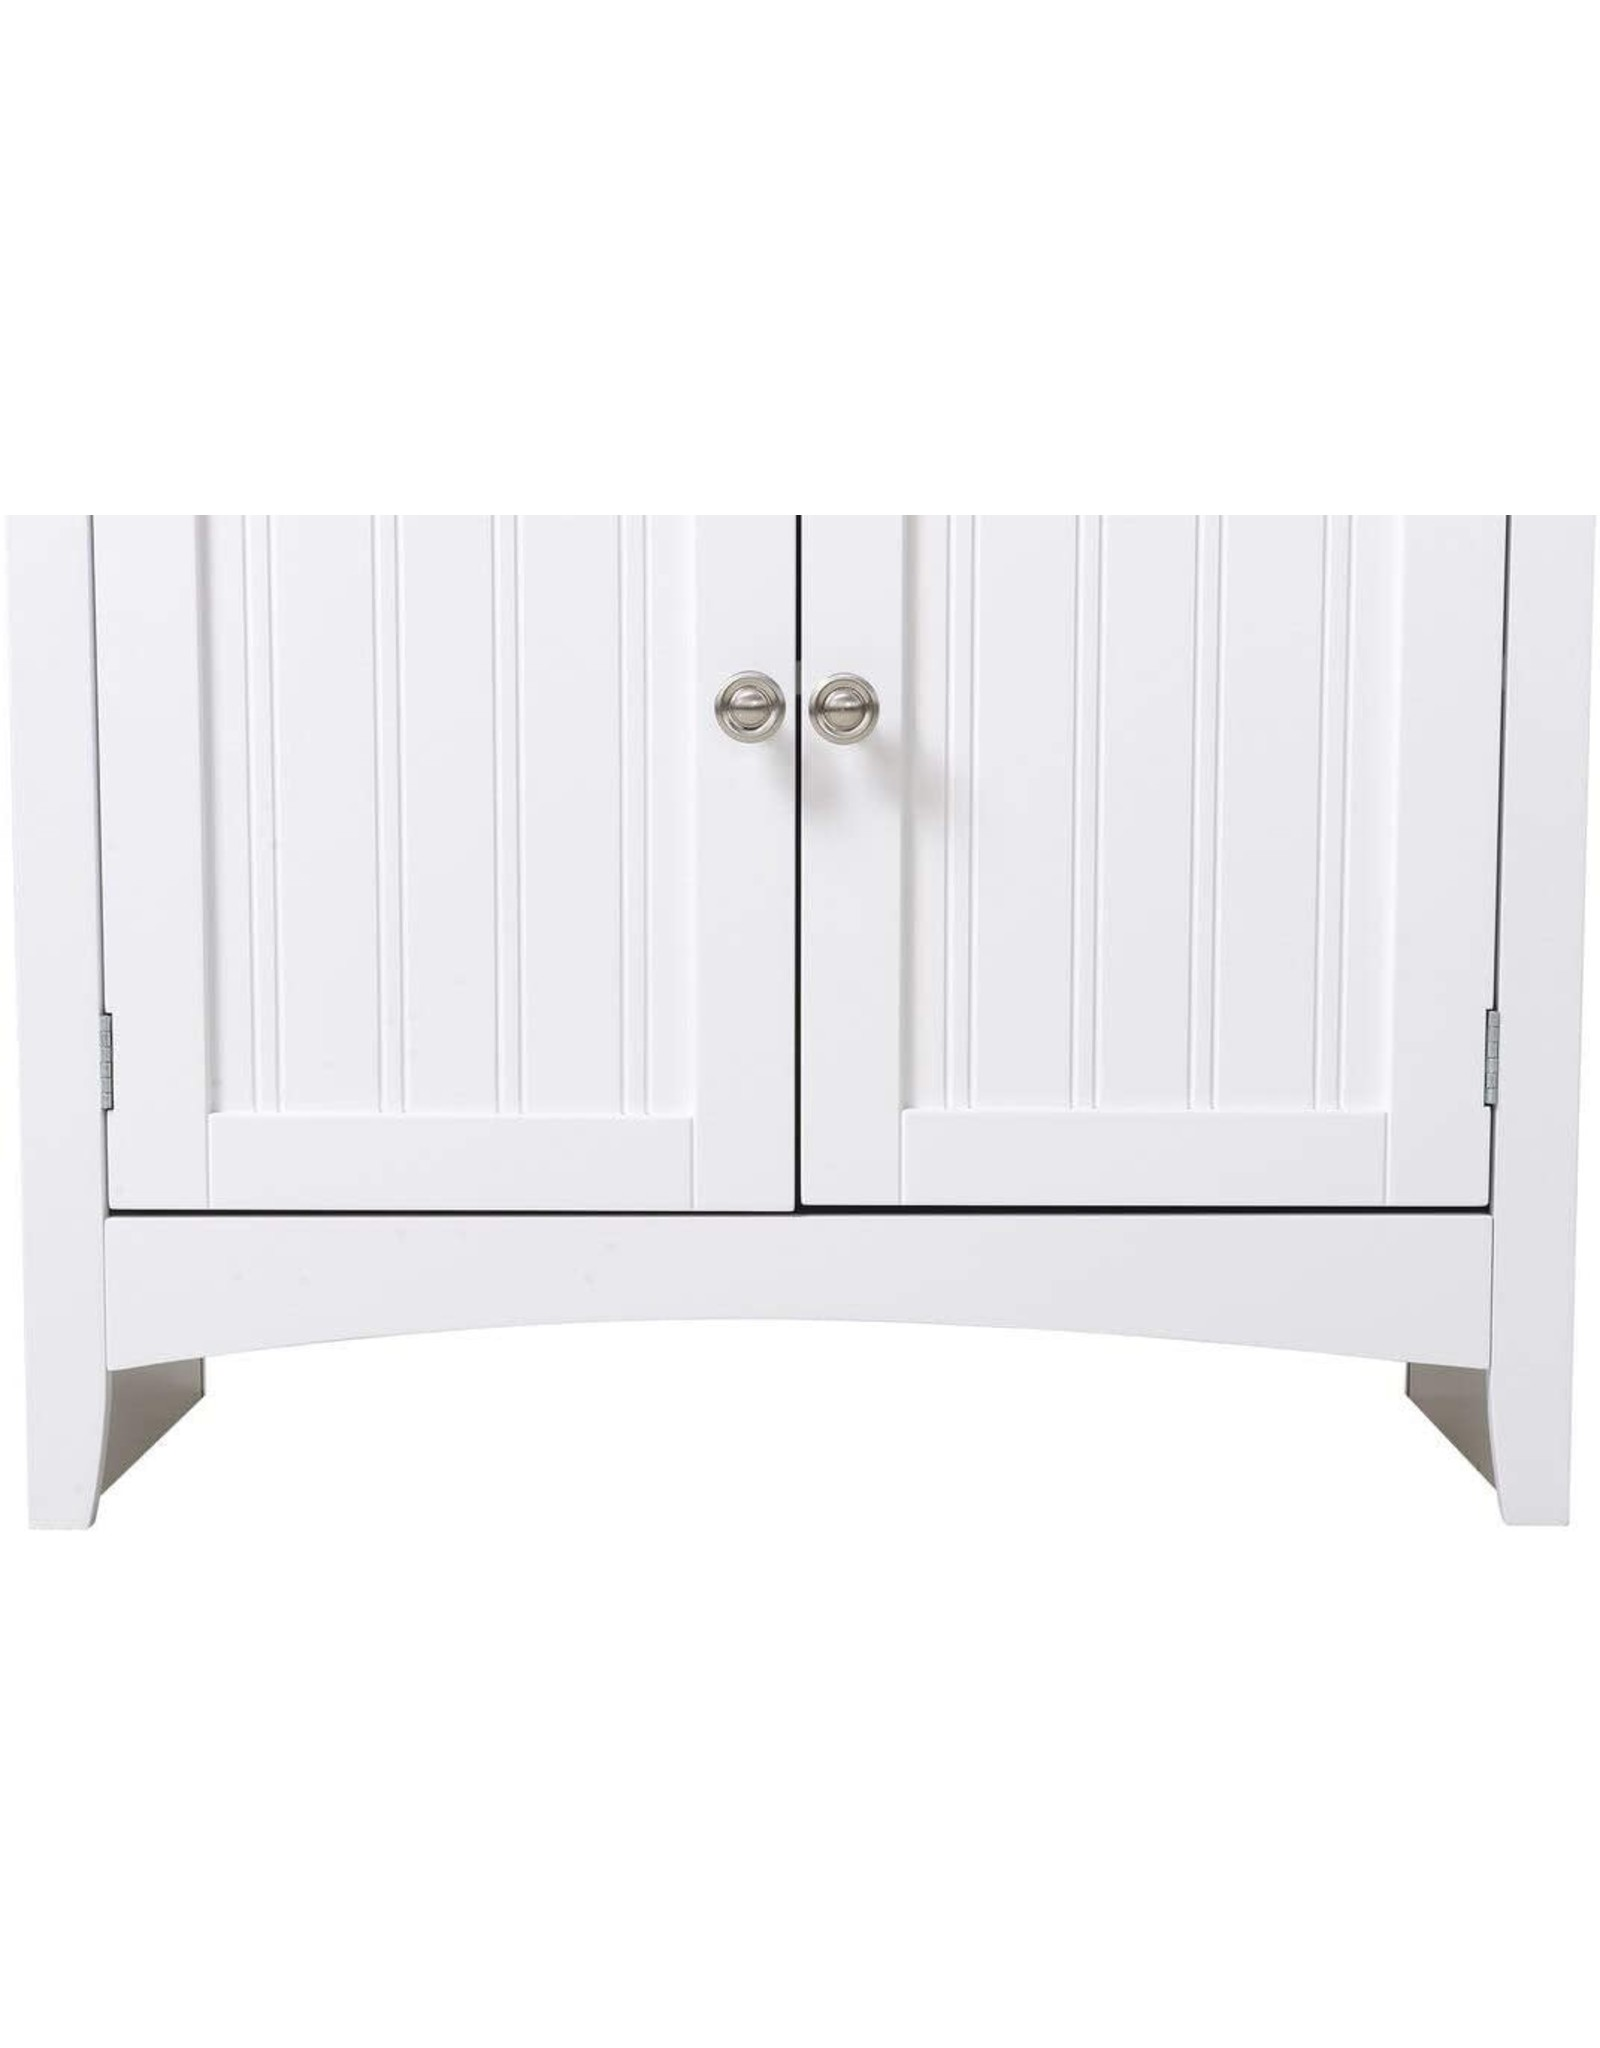 American Furniture Classics American Furniture Classics OS Home and Office Buffet and Hutch with Framed Glass Doors and Drawer, Large, White